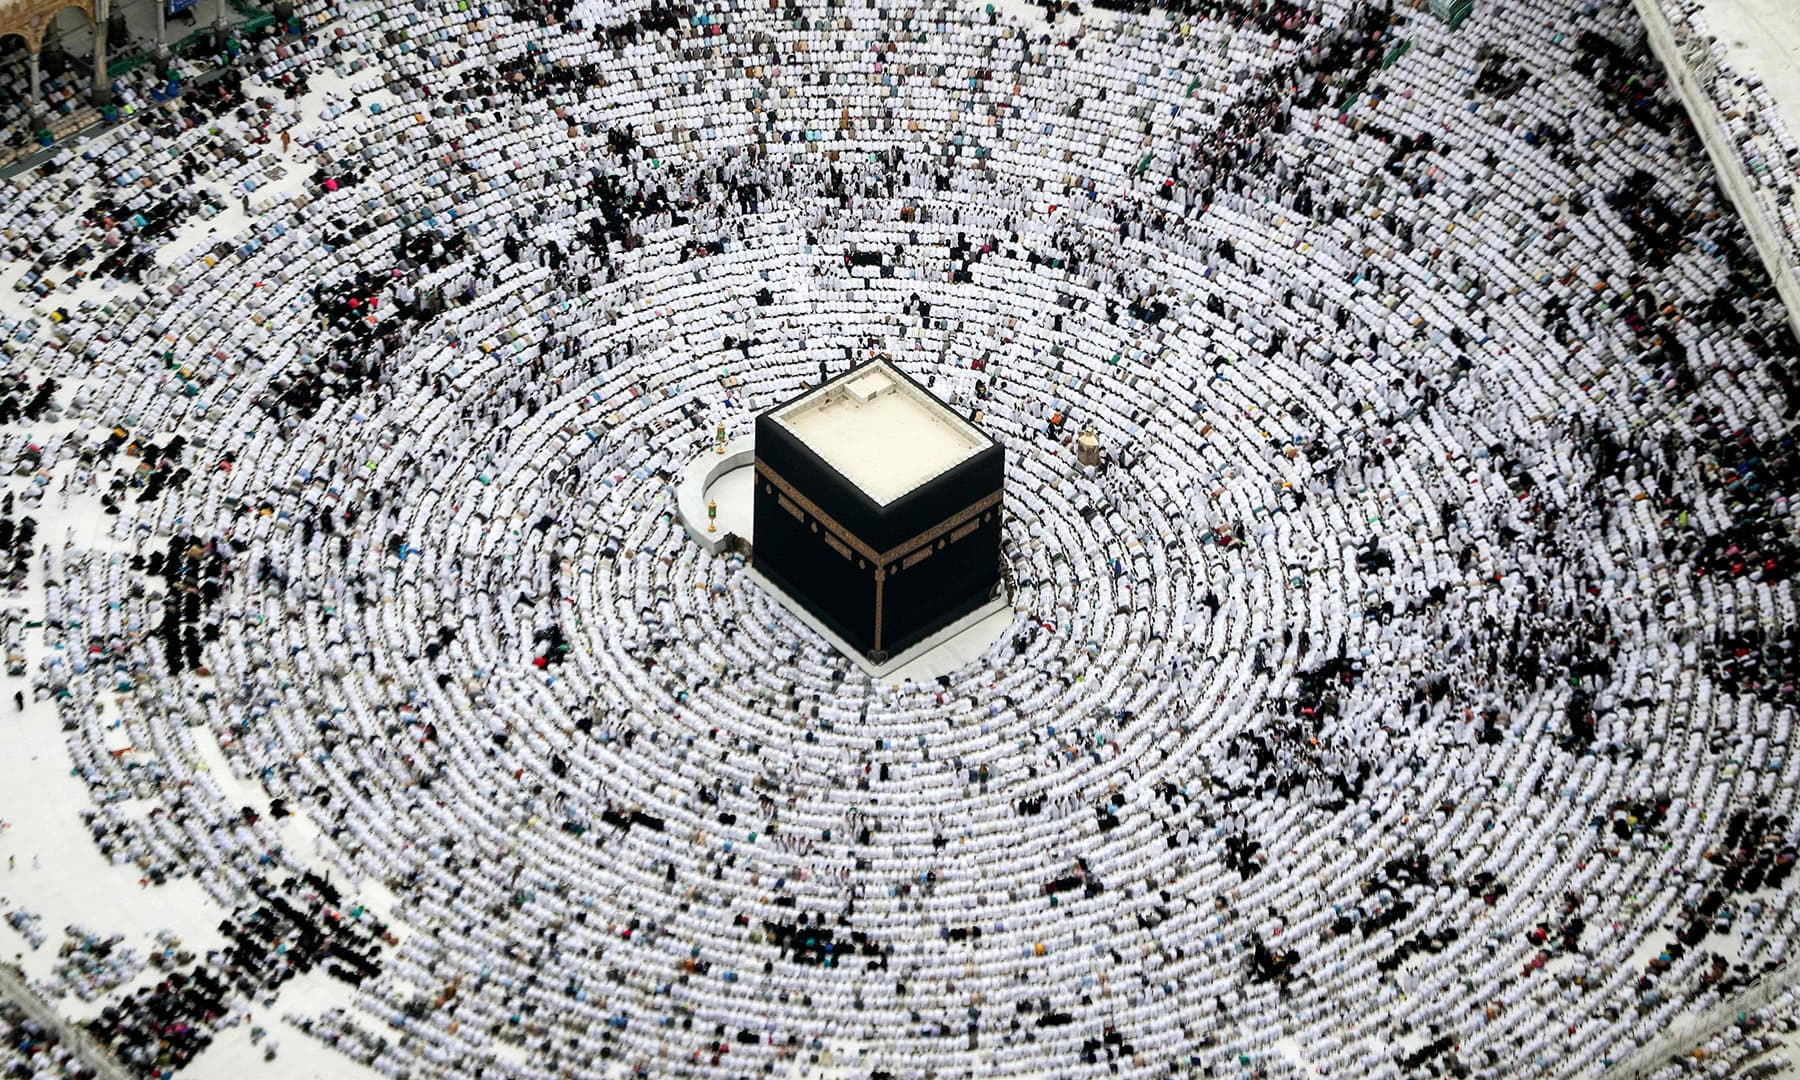 This picture taken on May 31 shows an aerial view of worshippers prostrating during prayer around the Holy Kaaba at the Grand Mosque in Saudi Arabia's holy city of Makkah. — AFP